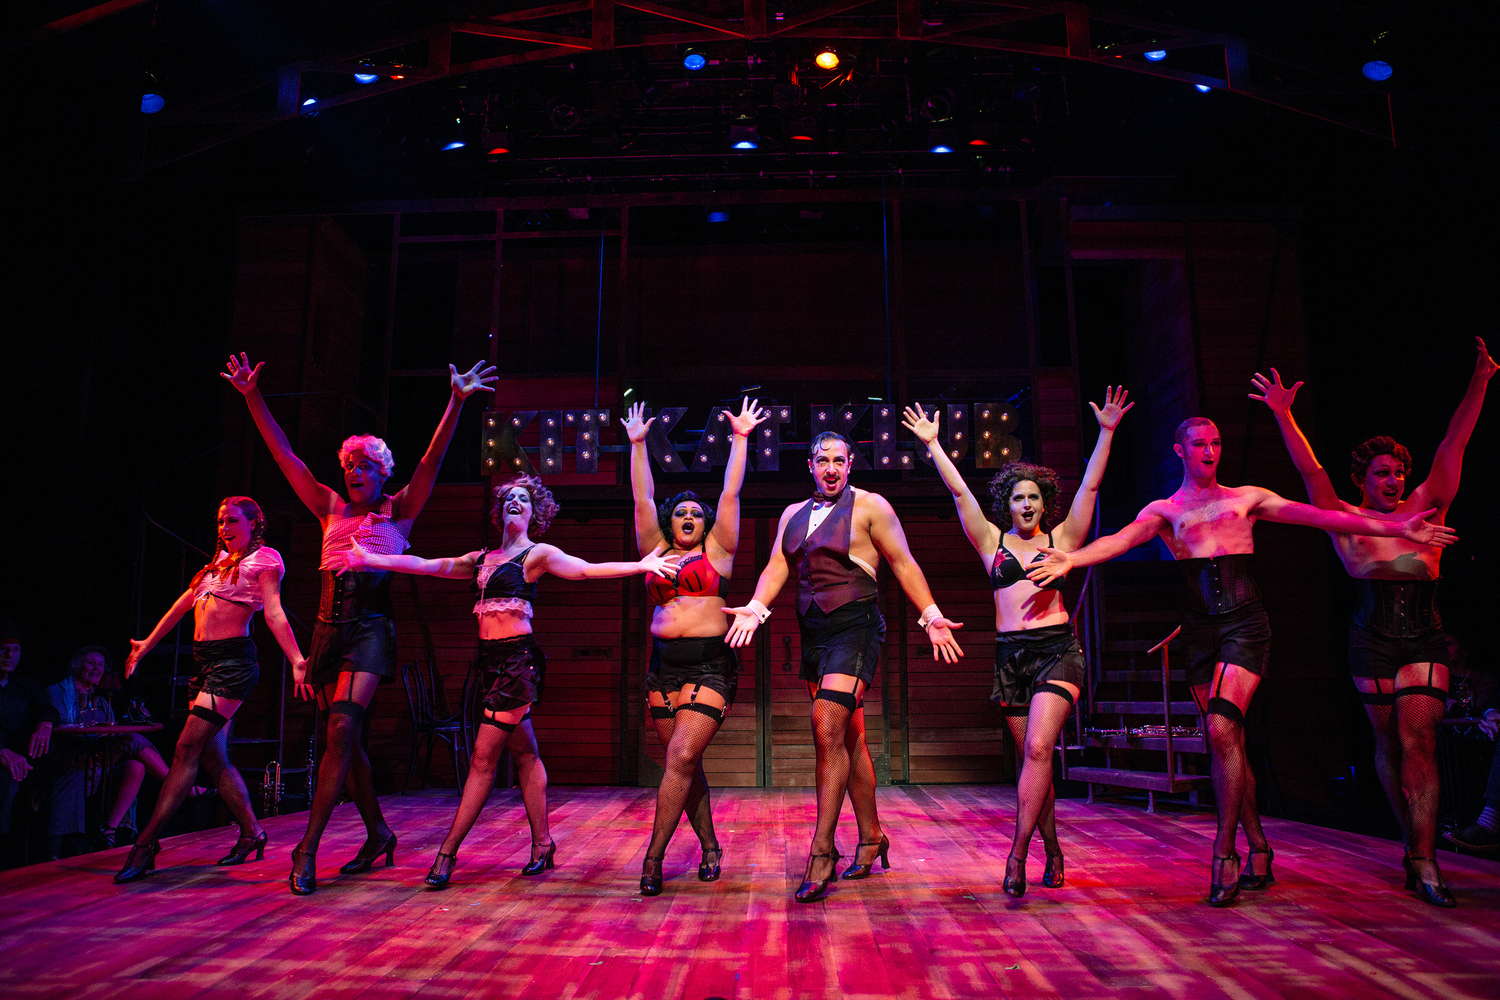 BWW Review: CABARET at SF Playhouse is an Eye-Popping, Wonderfully Acted Revival That Is As Relevant Today As When It Premiered in 1966